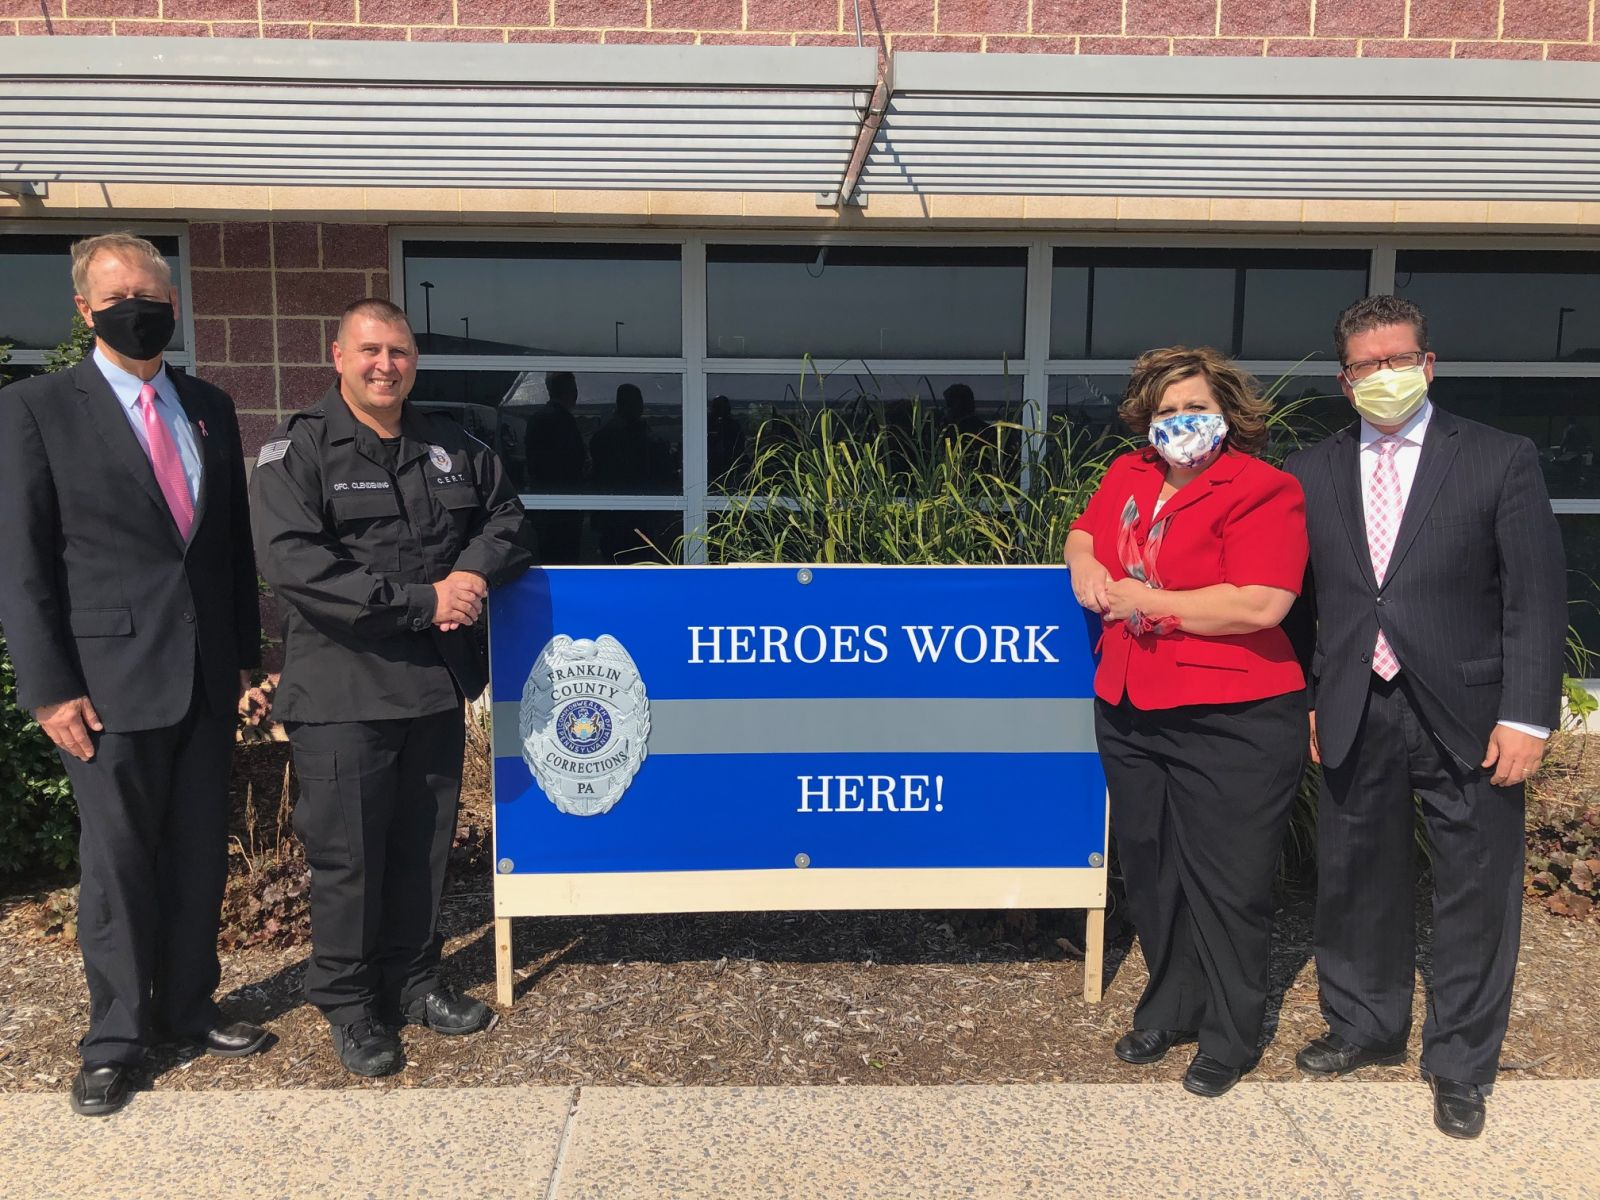 Commissioner Bob Ziobrowski, Correctional Officer Randy Clendening, Franklin County Jail Business Manager Tammy Zook, and Commissioner Chairman Dave Keller.